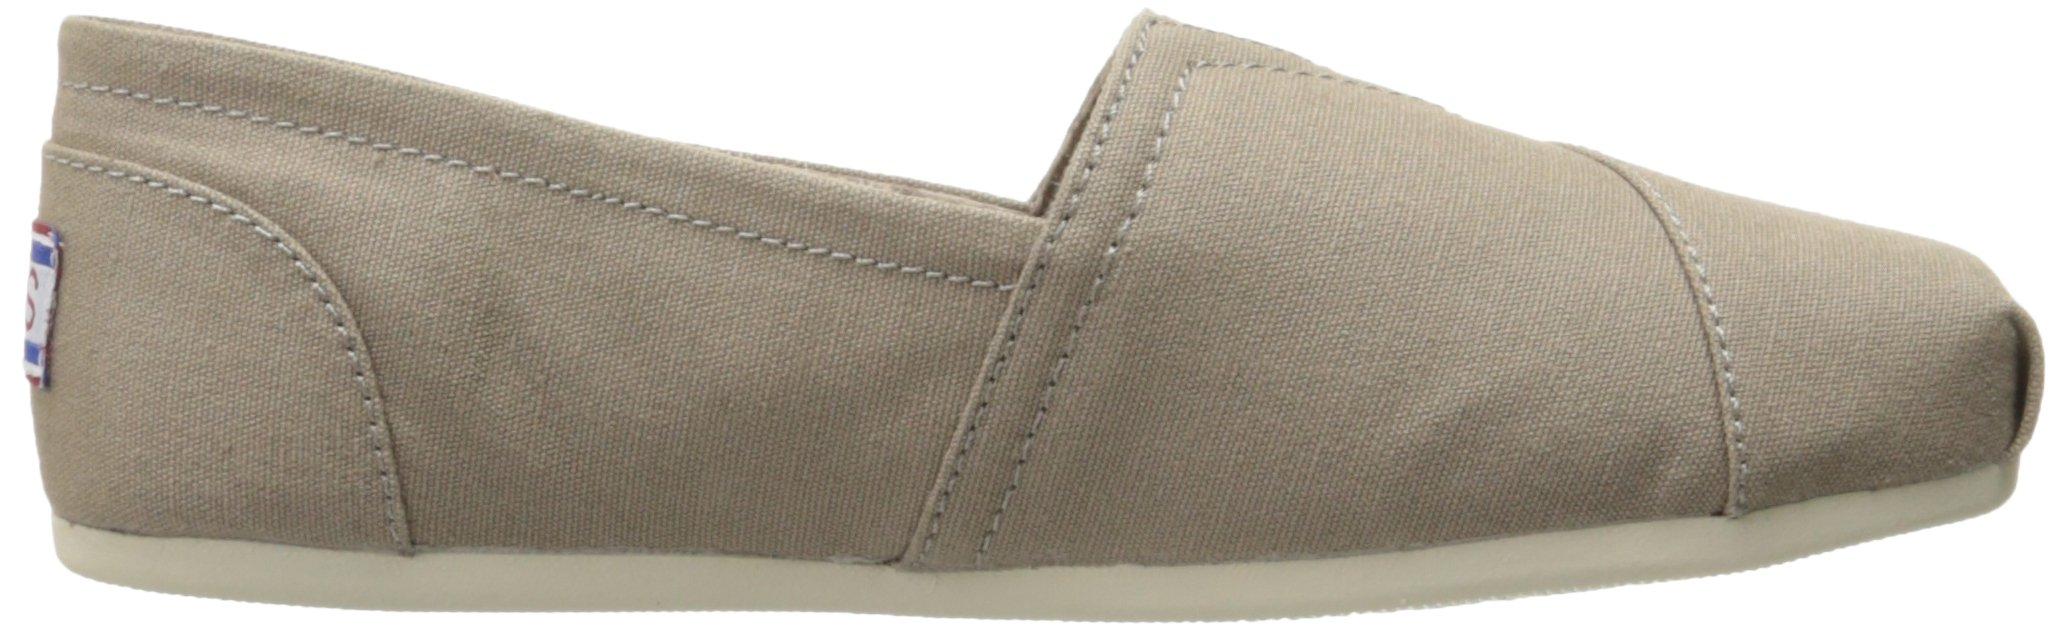 Skechers BOBS Women's Plush-Peace and Love Flat, Taupe, 8.5 W US by Skechers (Image #7)